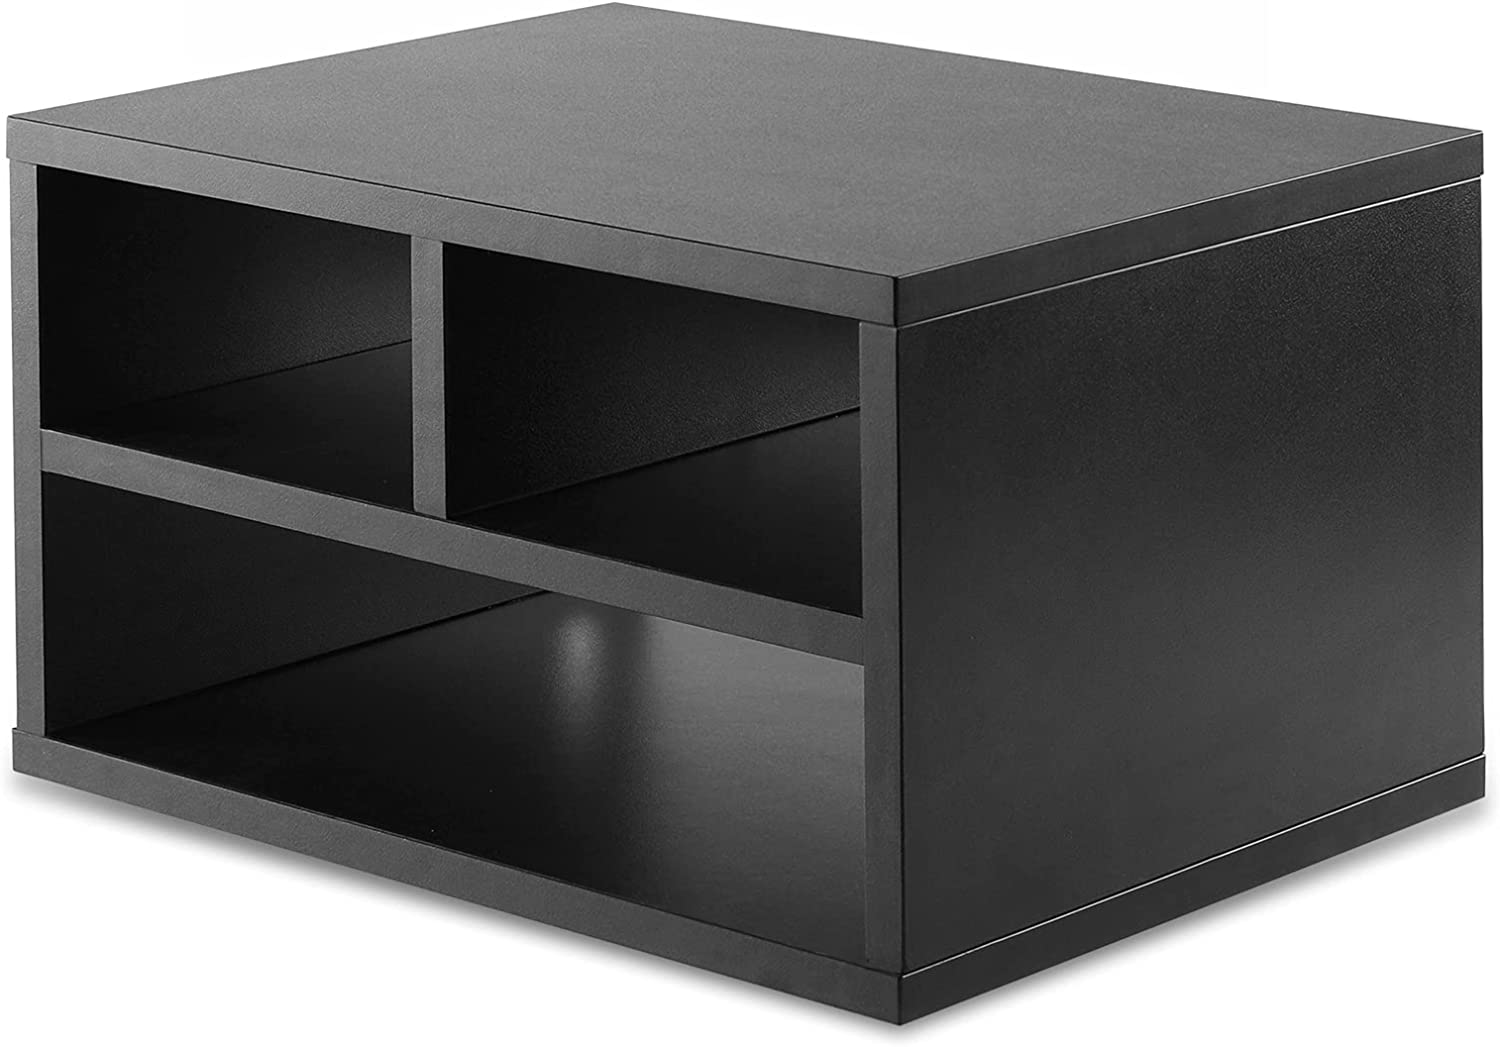 Printer Stand - Desktop Stand for Printer, Printer Stand for Desk with Storage File Cabinet for Home Office by AMERIERGO